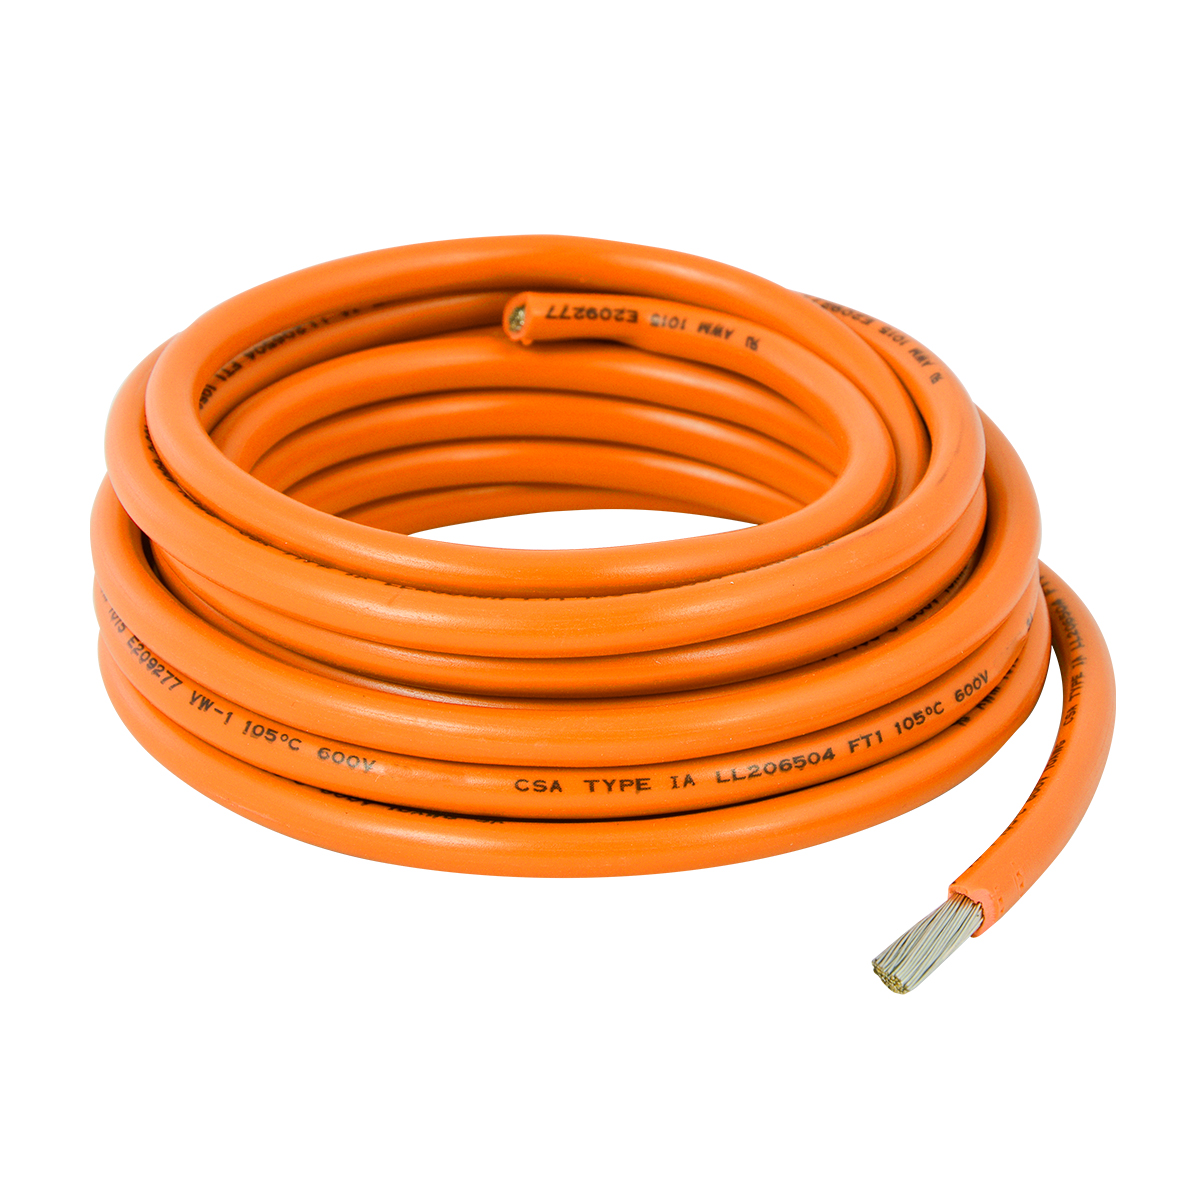 55002 Orange UL Listed Primary Wires in 14 Gauge